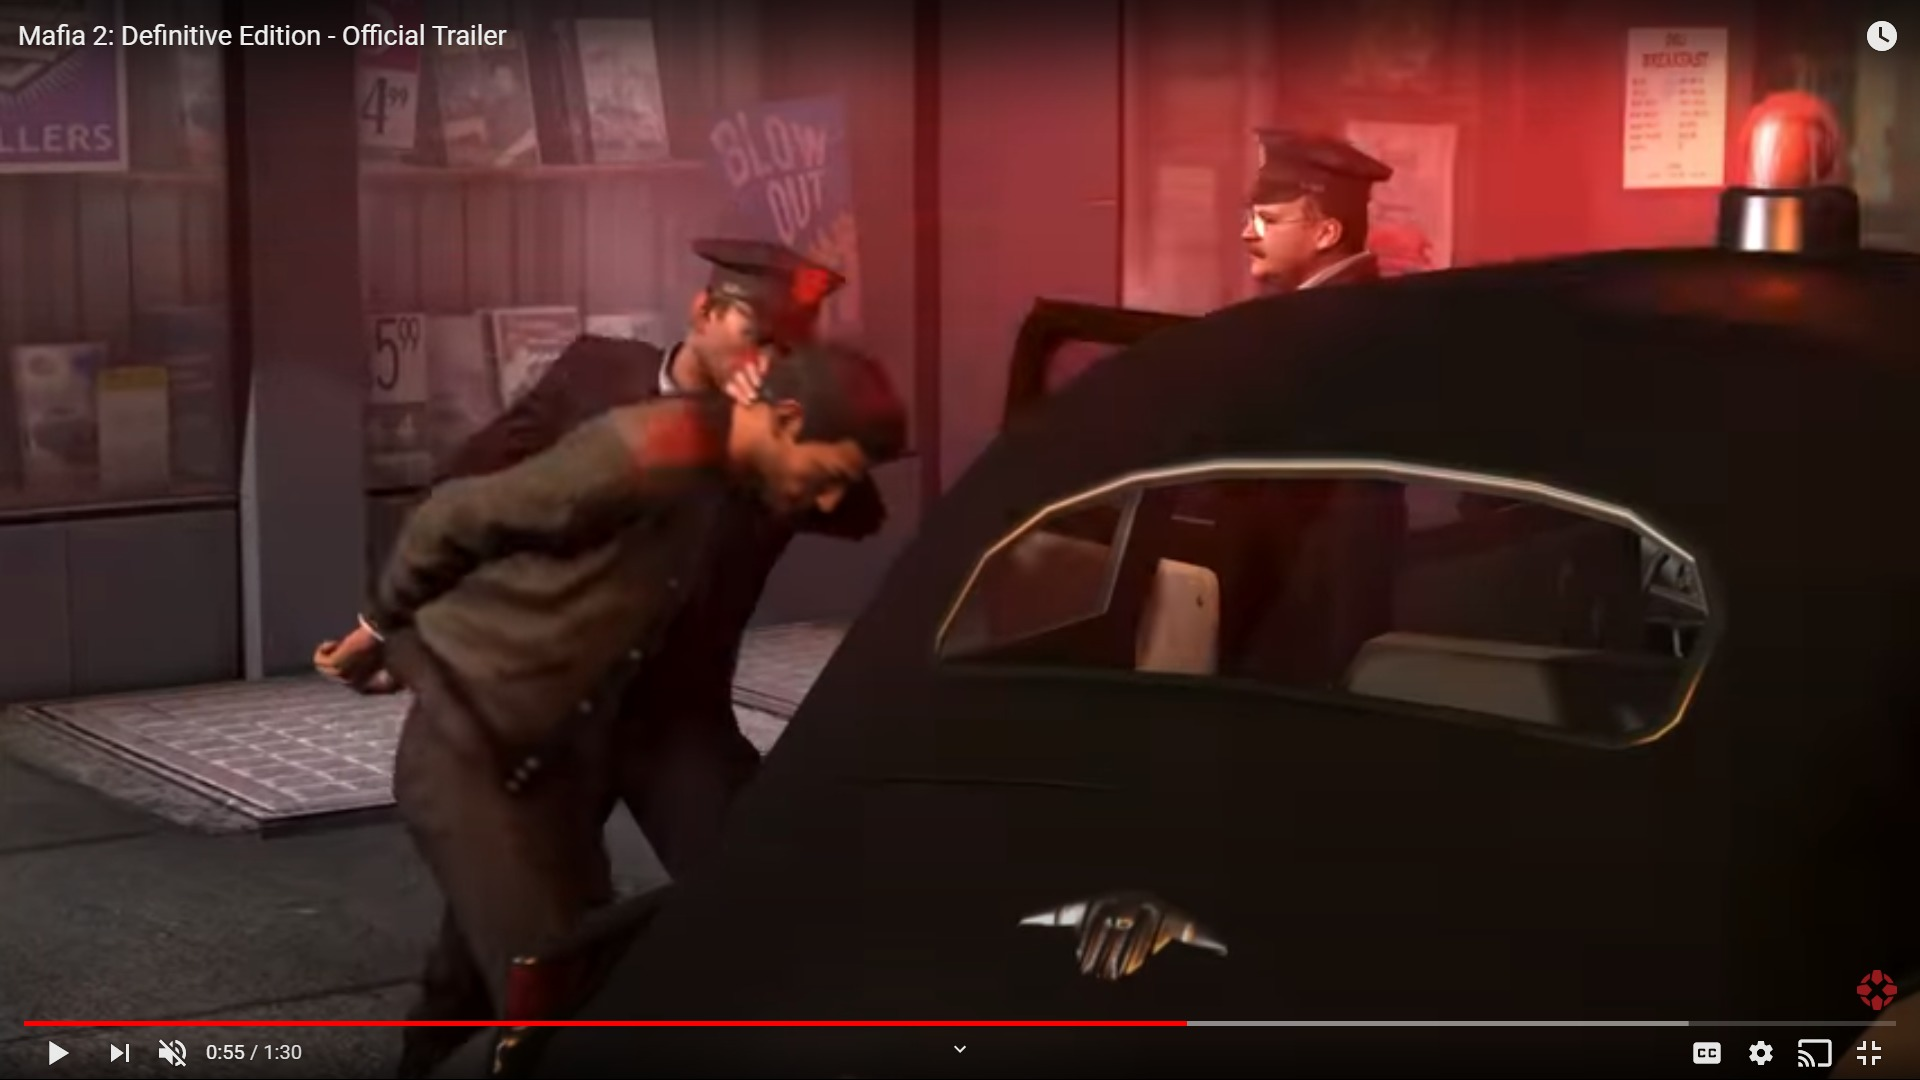 Mafia 2 And 3 Definitive Editions Are Available Now For Those Who Pre-Order Mafia: Trilogy Before August 28